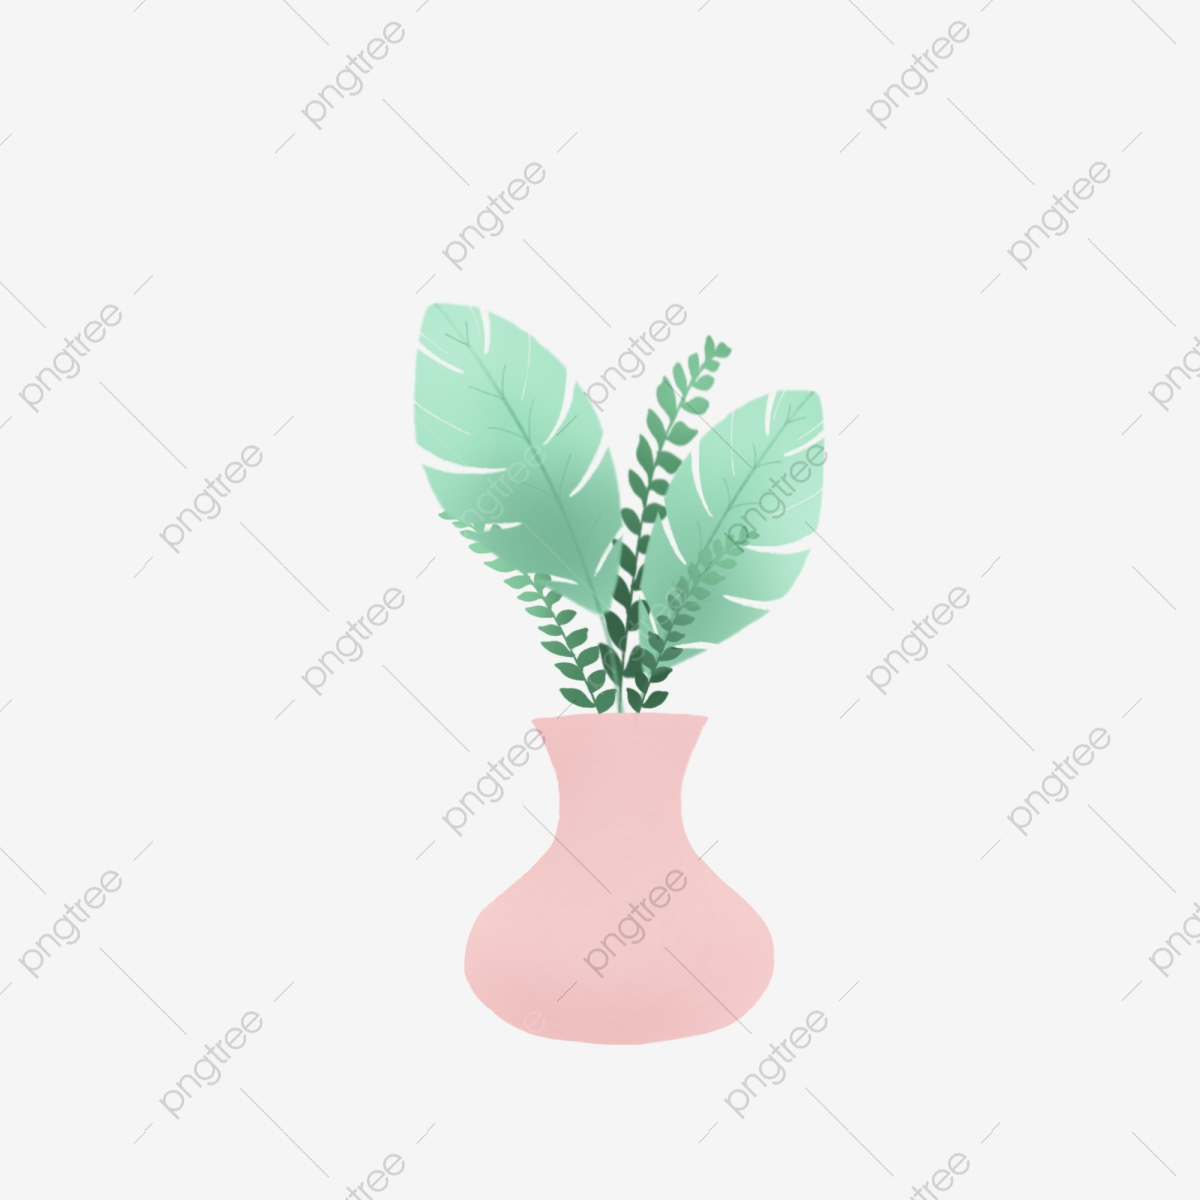 Planting clipart pink plant. Potted from false to